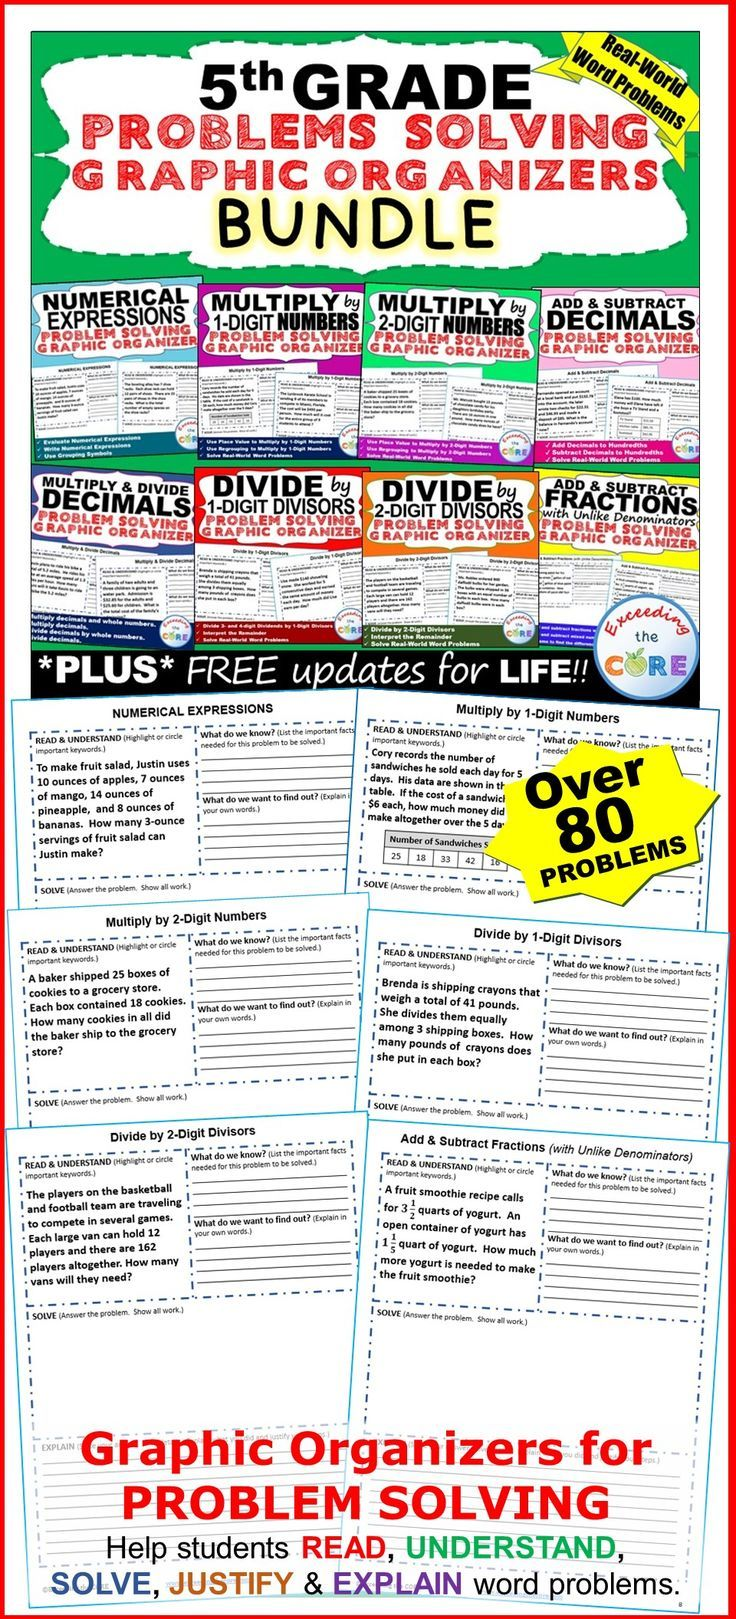 5th Grade Math Common Core WORD PROBLEMS with Graphic Organizer { BUNDLE } includes 8 sets (80 problems) of 5th Grade real-world COMMON CORE WORD PROBLEMS that students must solve and explain using problem-solving strategies.  Topics:  ✔ Numerical Expressions  ✔ Multiply by 1-Digit Numbers  ✔ Multiply by 2-Digit Numbers  ✔ Divide by 1-Digit Divisors  ✔ Divide by 2-Digit Divisors  ✔ Add and Subtract Decimals  ✔ Multiply and Divide Decimals  ✔ Add and Subtract Fractions  5.NBT, 5NF, 5MD, 5OA…